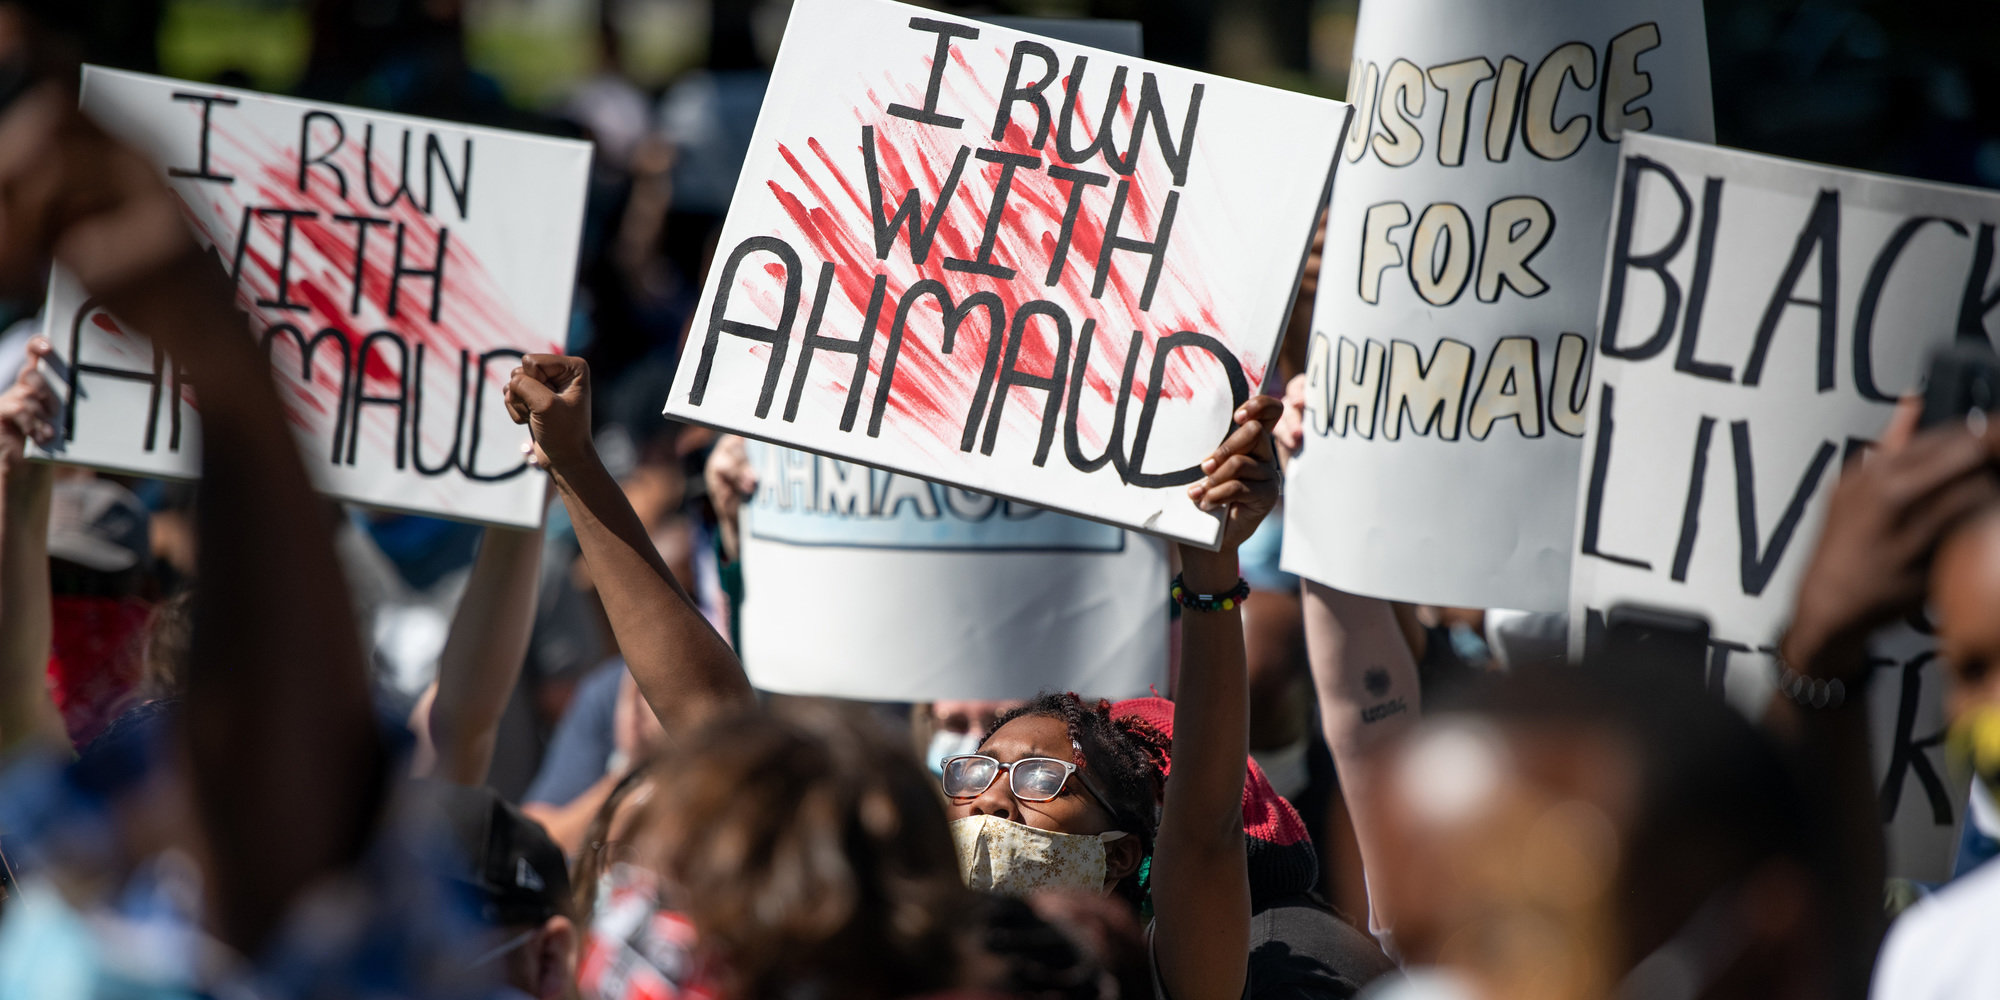 Demonstrators protest the shooting death of Ahmaud Arbery at the Glynn County Courthouse in Brunswick, Georgia, on May 8. Gregory and Travis McMichael were arrested the previous night and charged with murder.